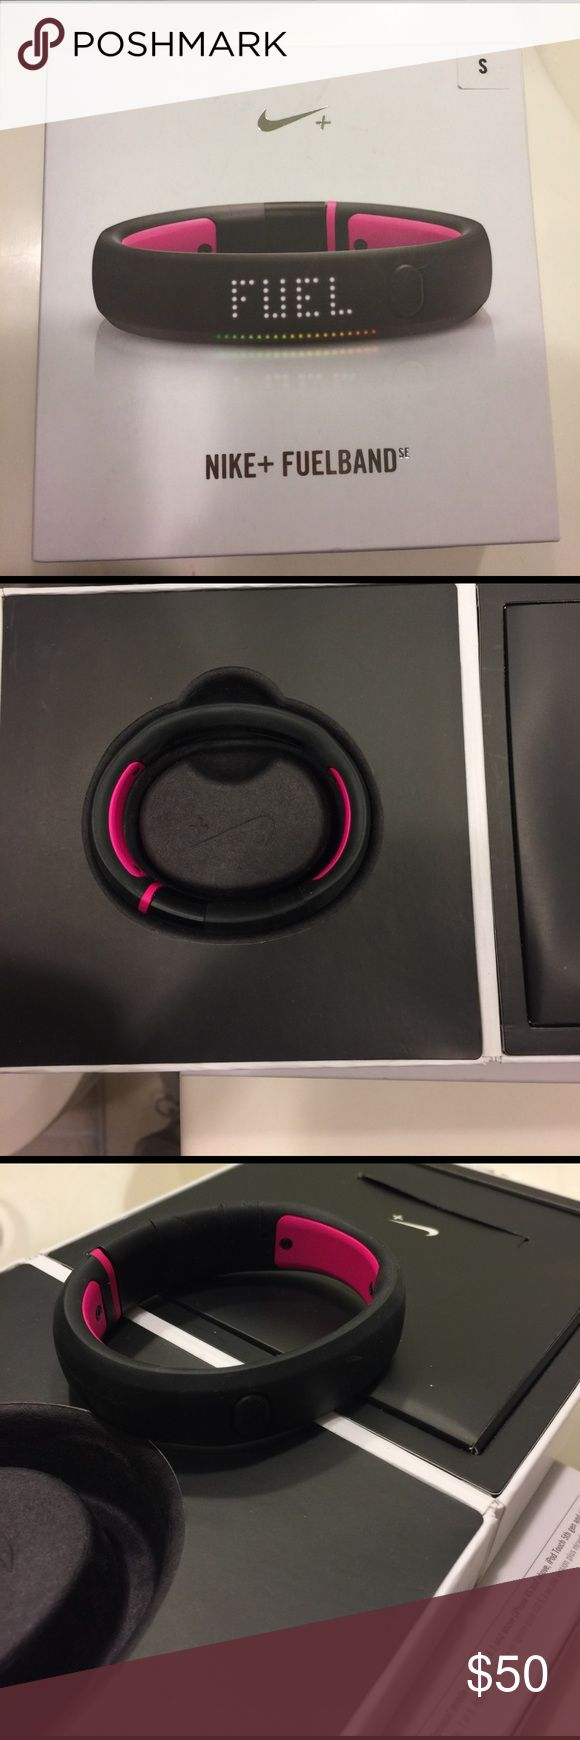 Nike Fuelband Brand New Nike Fuel band! Already have a fitbit and got it as a gift. Nike Accessories Watches